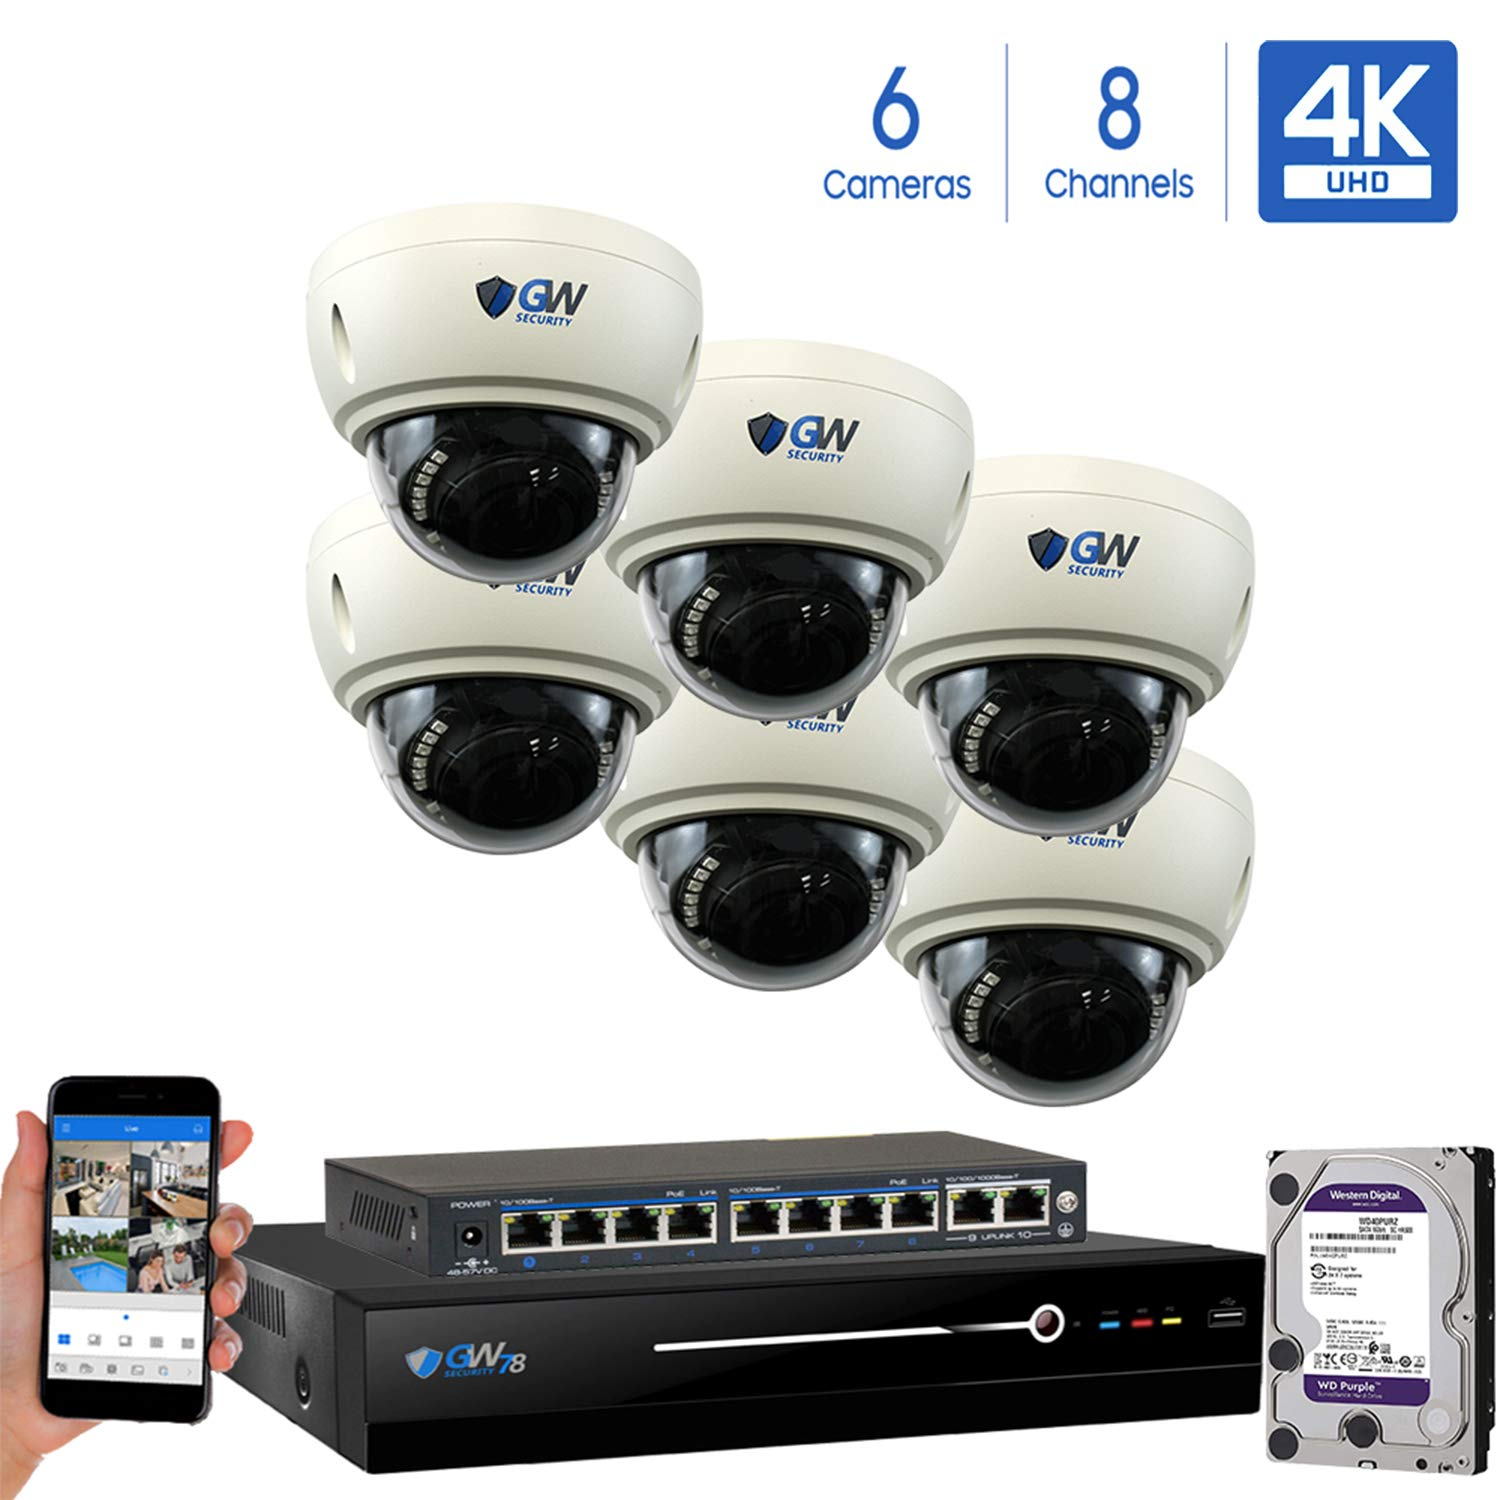 GW 8 Channel 8MP UltraHD 4K 3840×2160 Audio Video Motorized Zoom Home NVR Security System – 6 x Dome 8 Megapixel 2.8-8mm 3X Optical Zoom Waterproof IP PoE Cameras Built-in Microphone